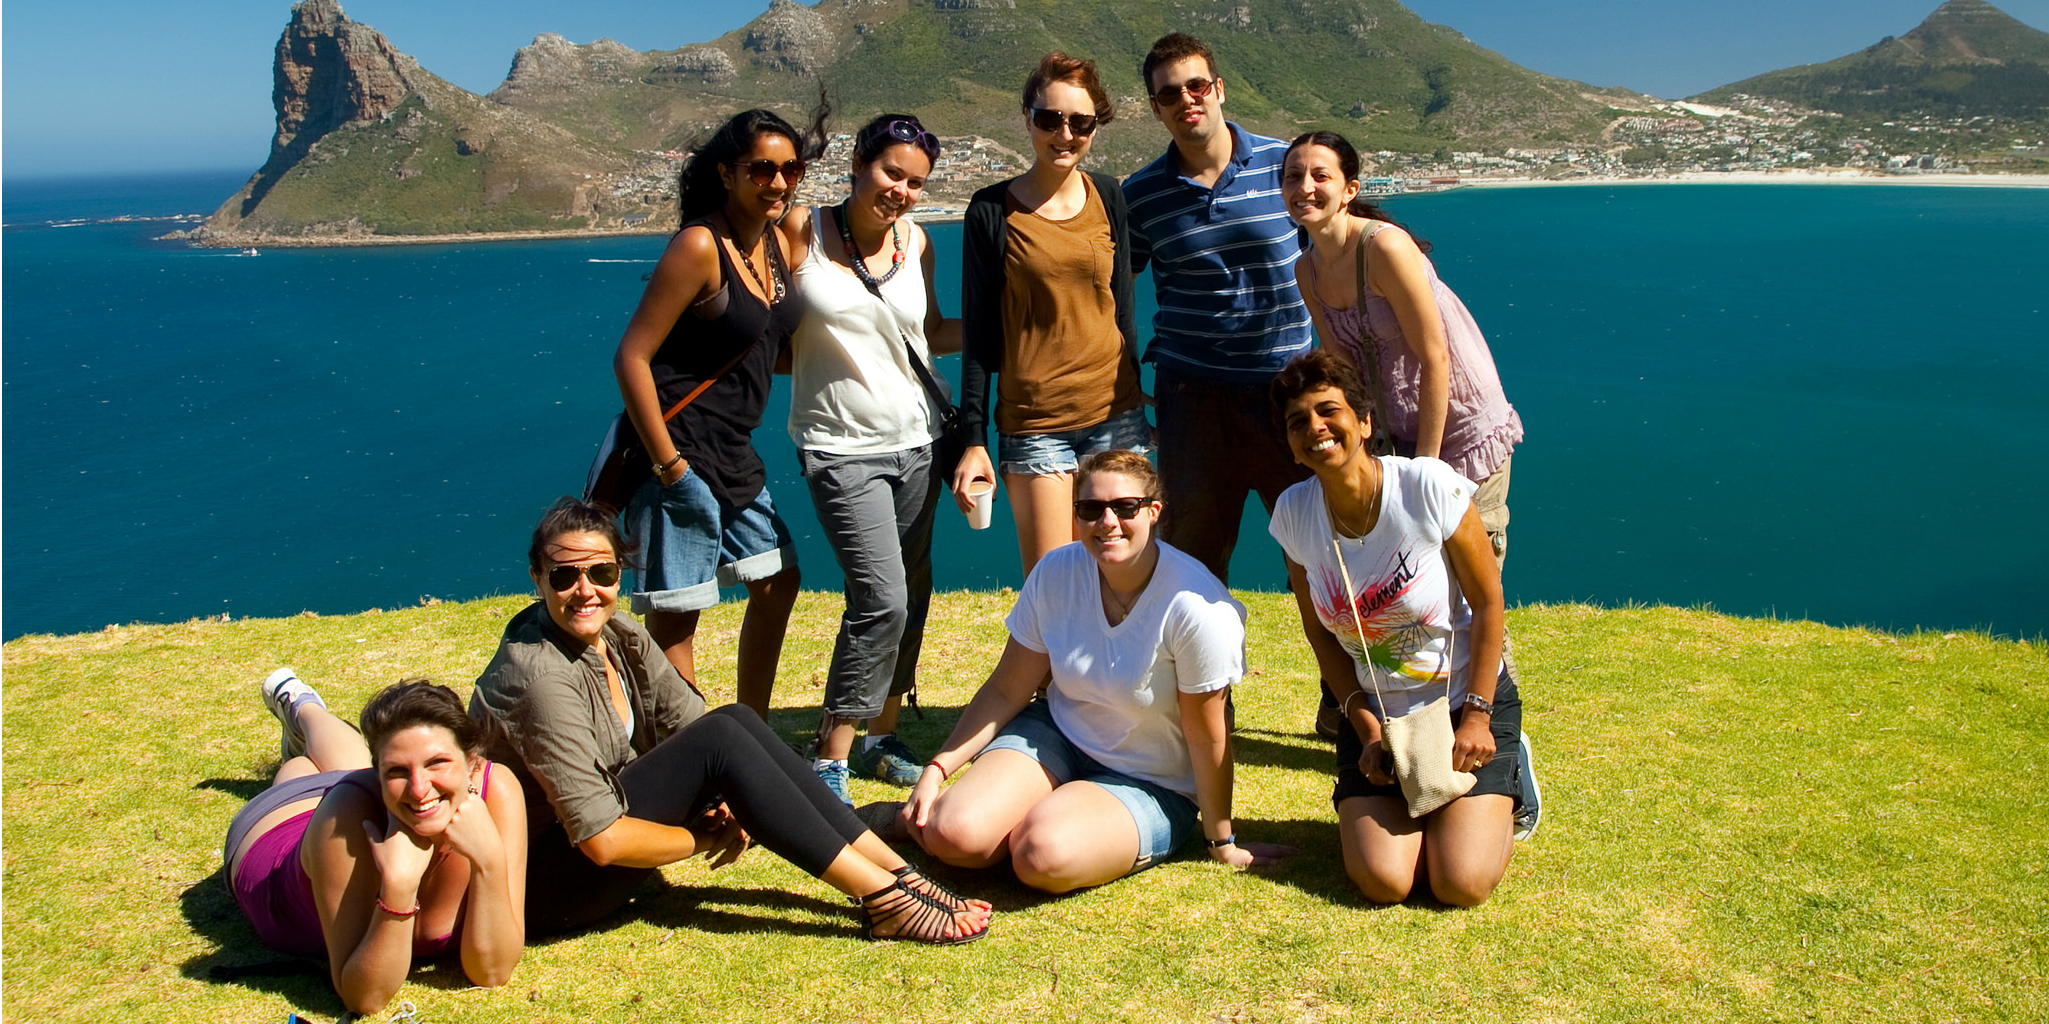 Make international friends on a gap year abroad.